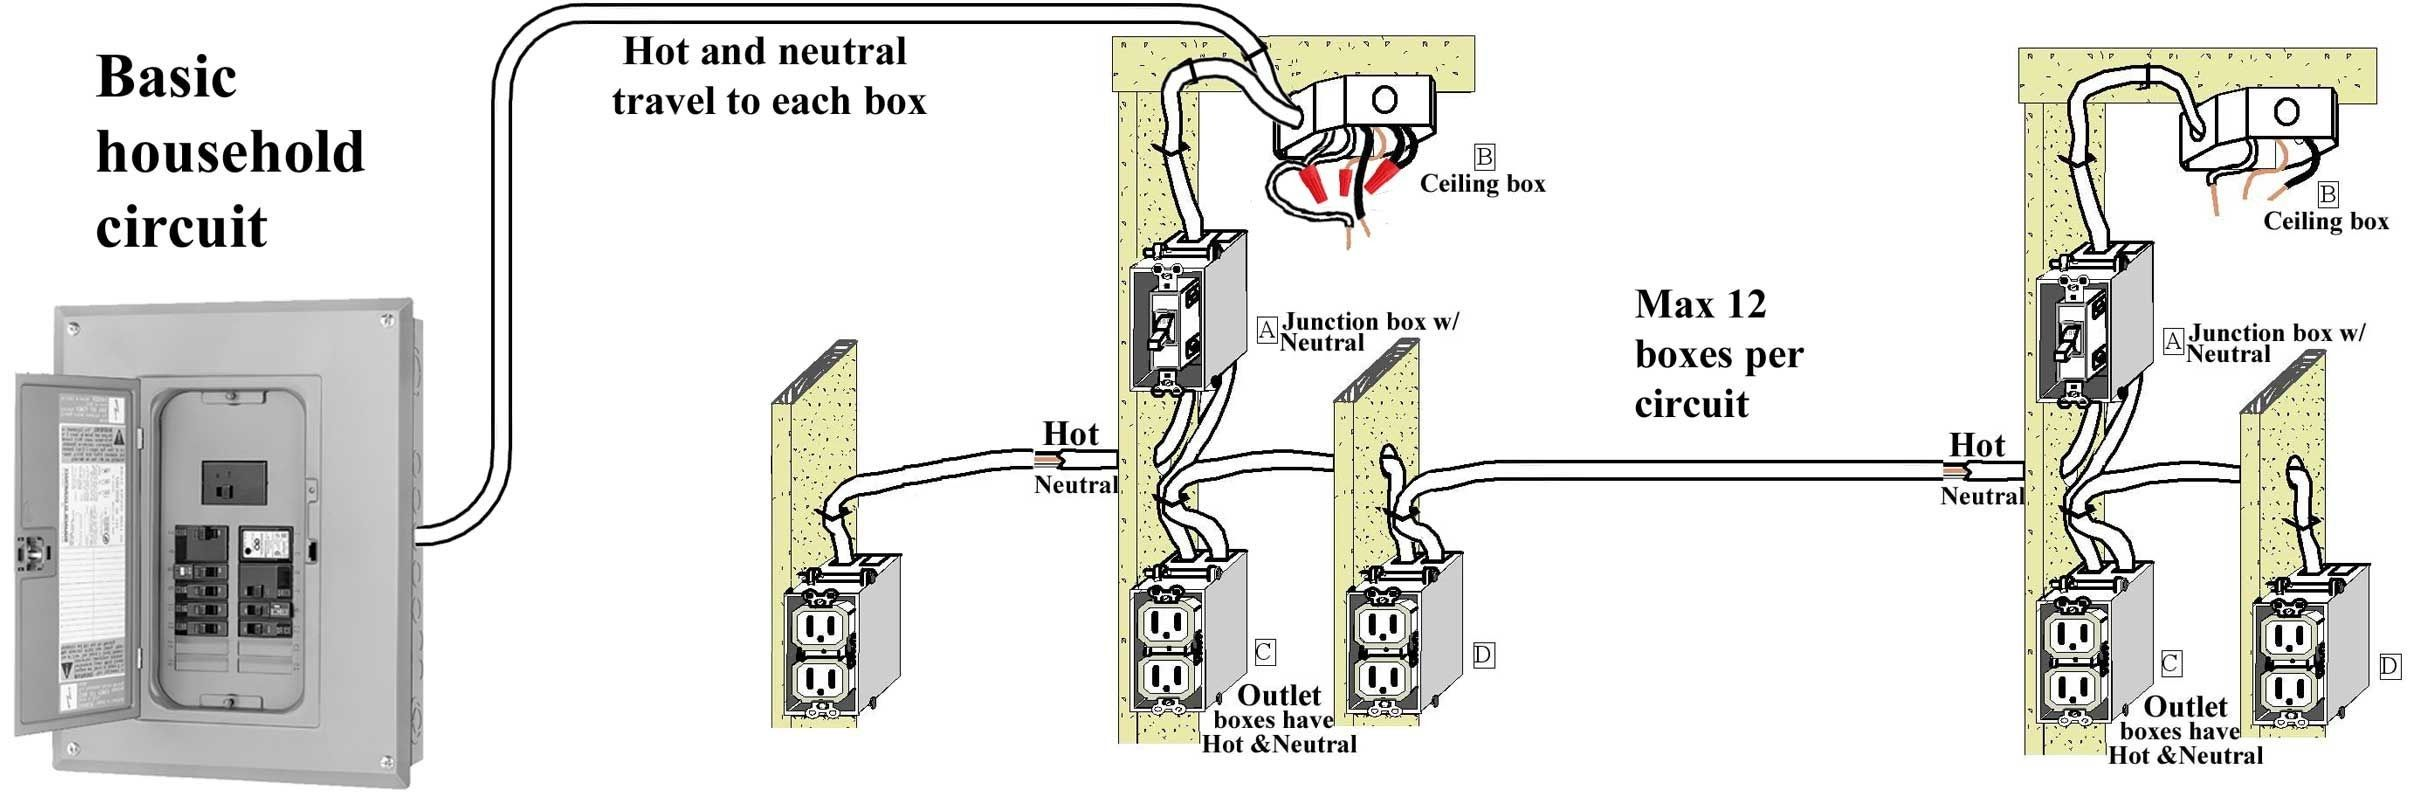 hight resolution of new basic electrical wiring diagram diagram wiringdiagram diagramming diagramm visuals